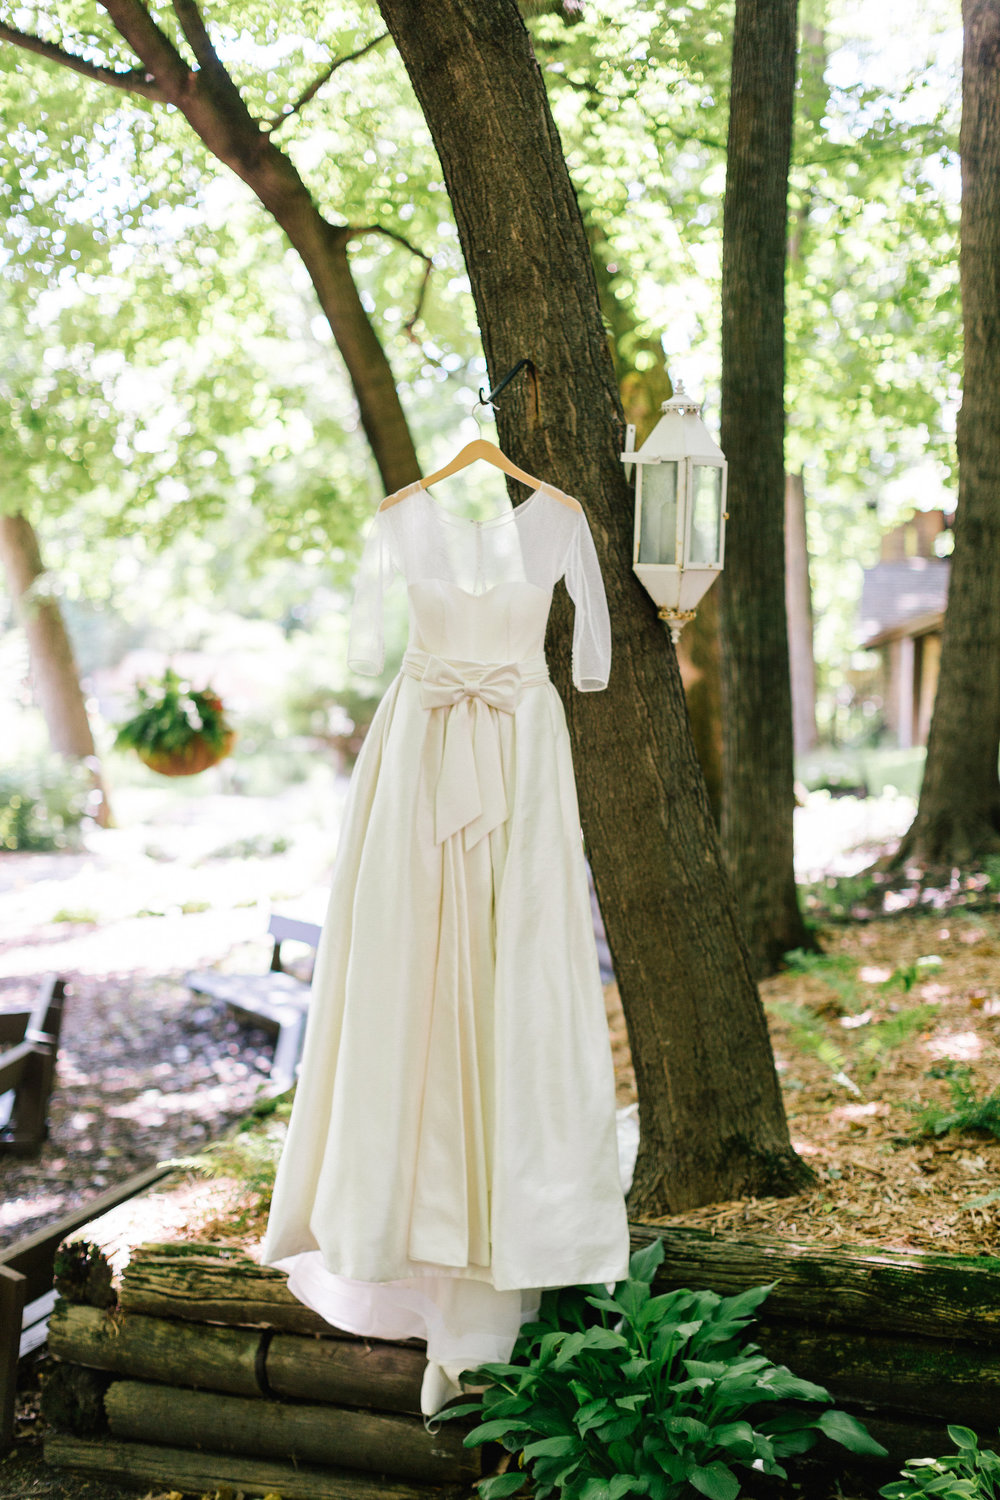 Allison_Hopperstad_Photography_Acowsay_Wedding_Dress.JPG